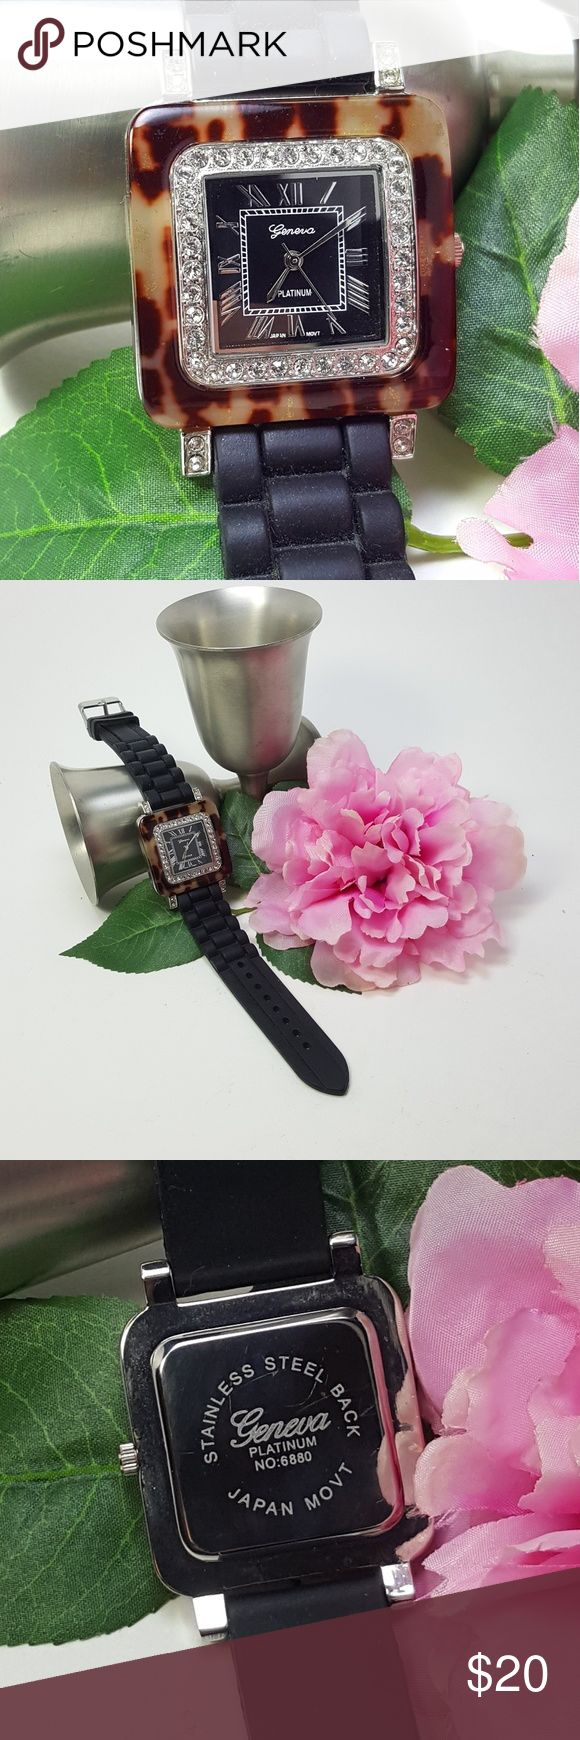 Geneva Platinum Black Silicone Tortoise Watch Wonderful women's watch by Geneva Platinum Black Silicone strap with Tortoise square face and crystal bezel. 9.5 L, brand new battery. Excellent condition. Geneva Platinum Accessories Watches